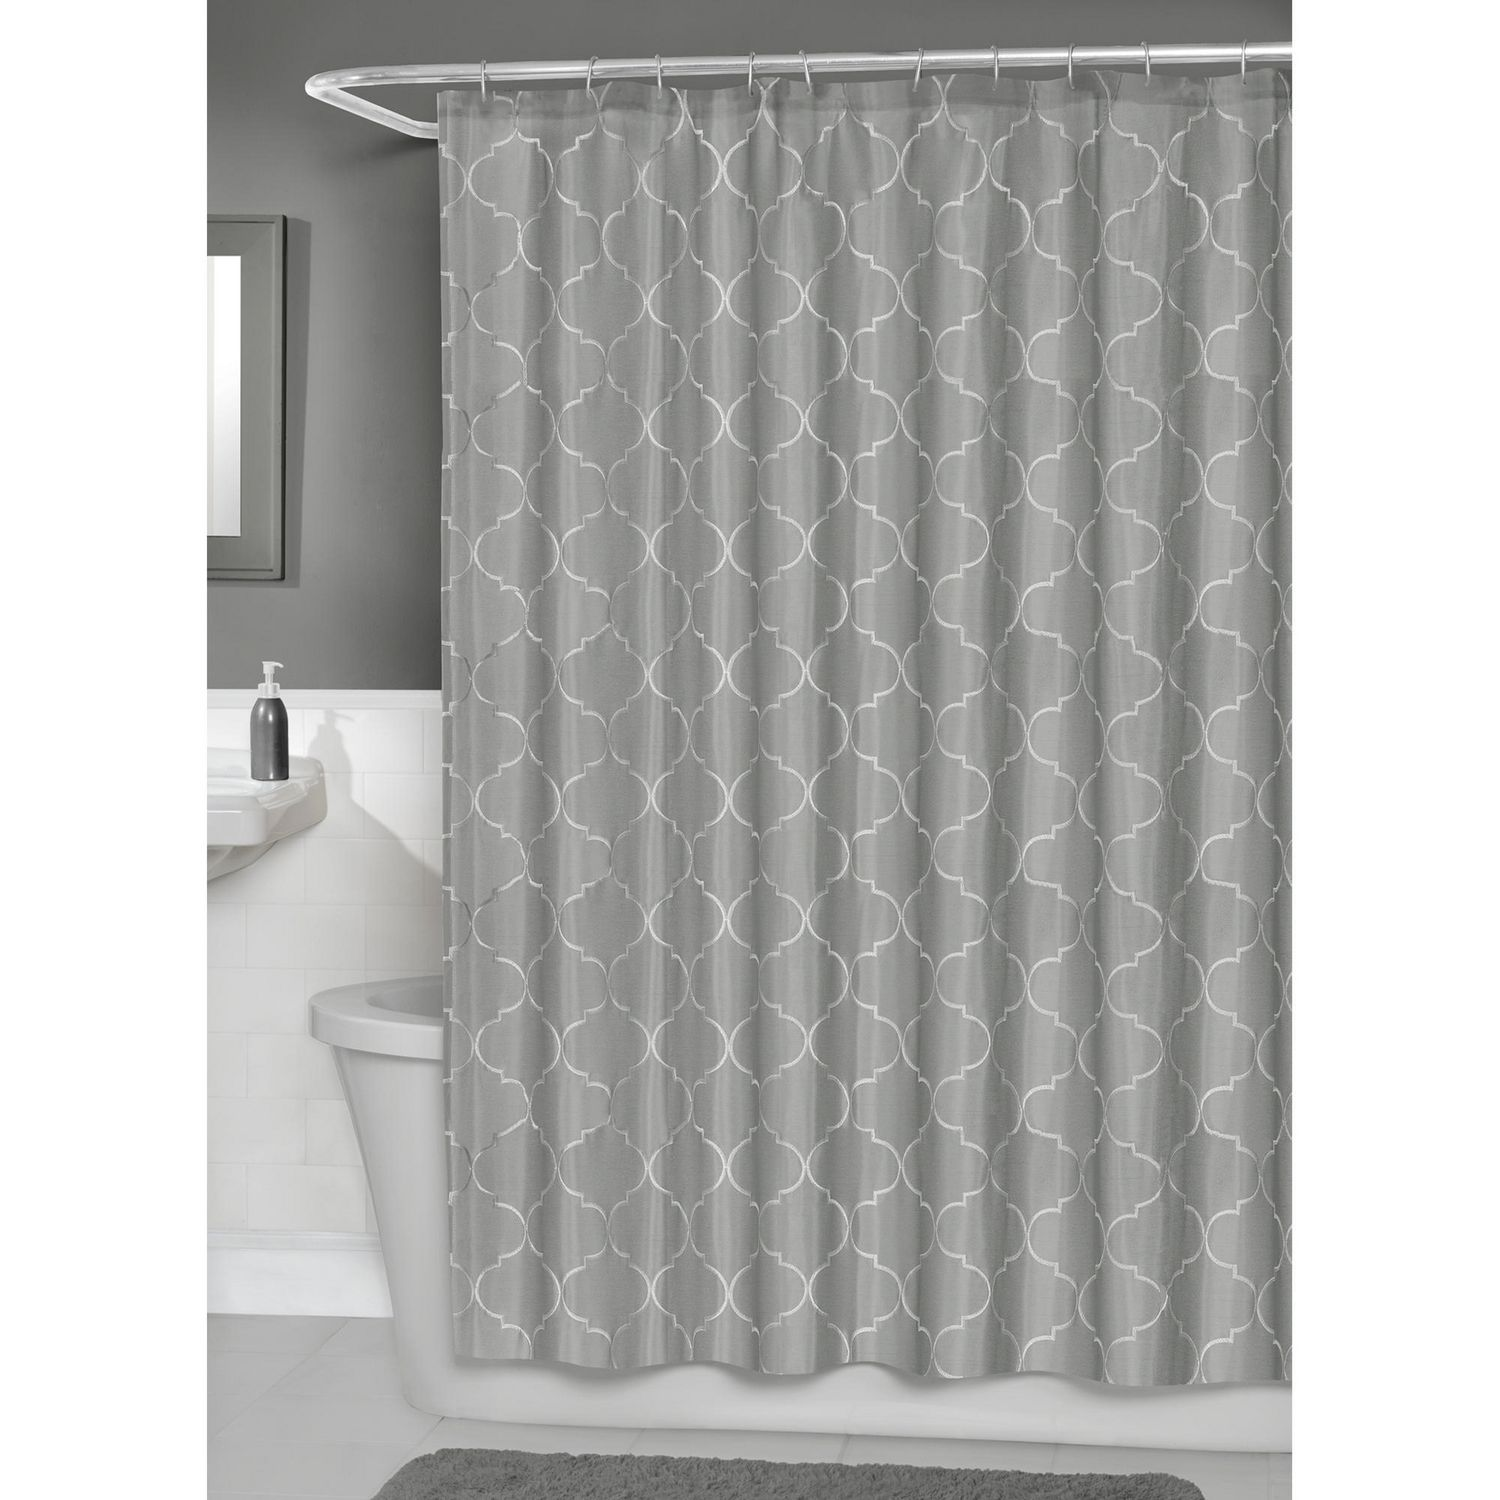 Transparent cloth shower curtain - Hometrends Concord Fabric Shower Curtain With Peva Liner